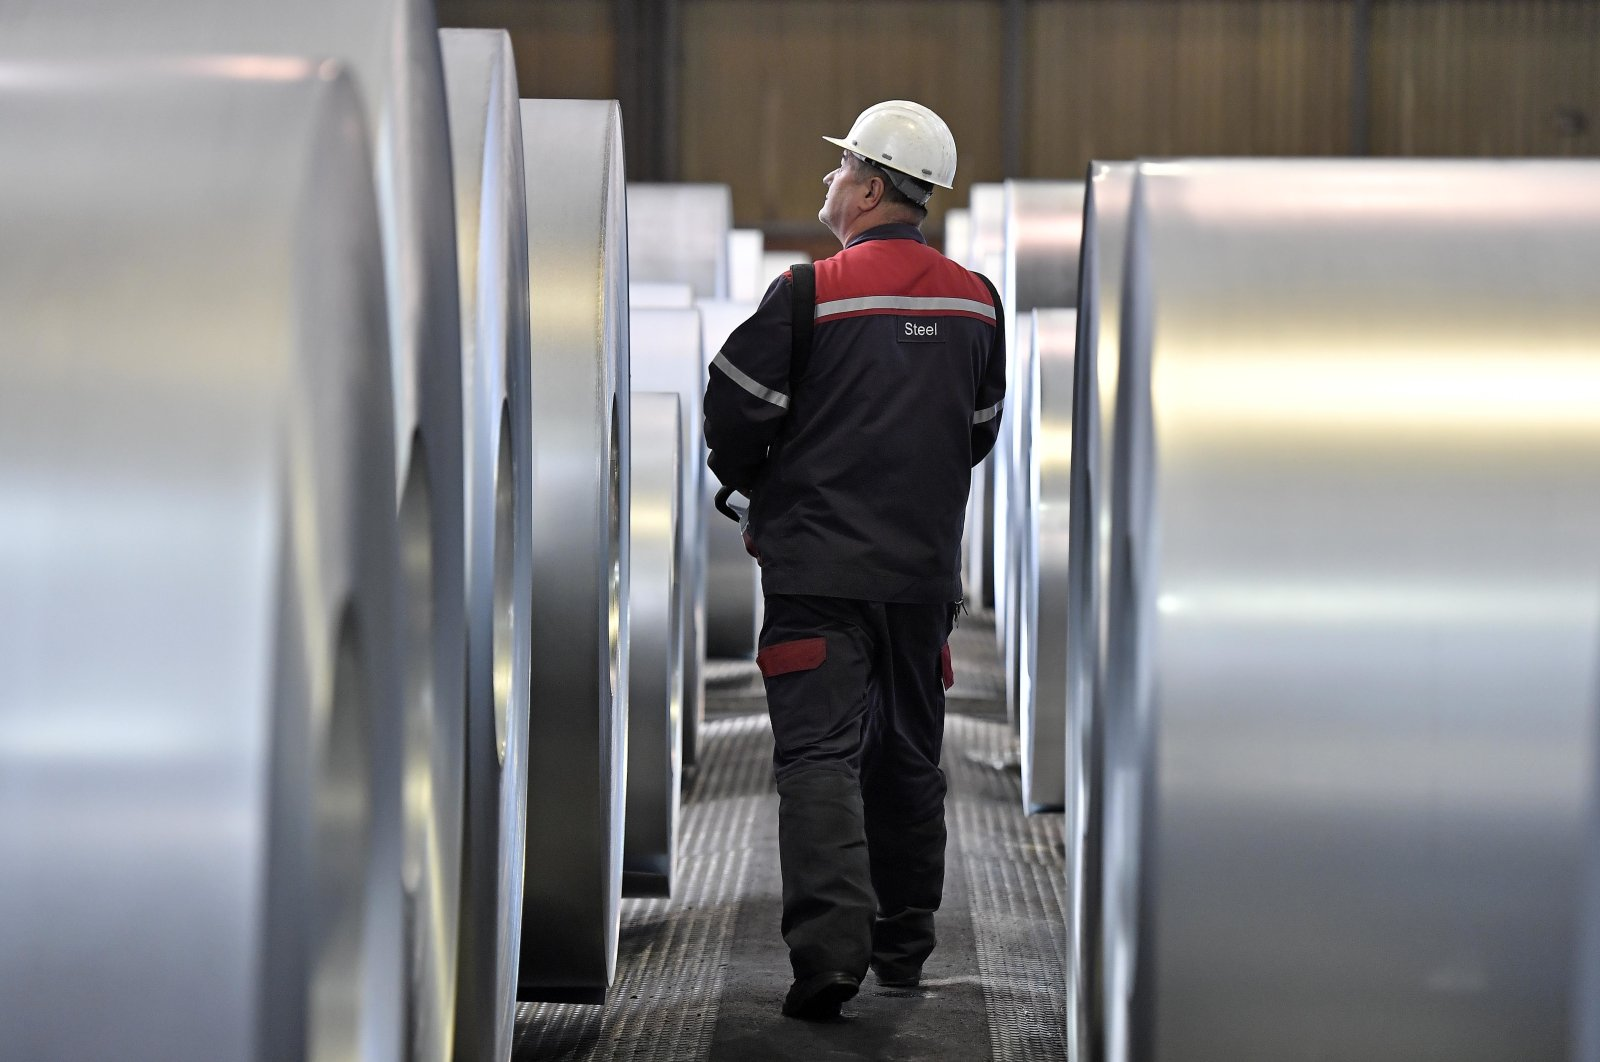 A worker checks steel coils at the ThyssenKrupp steel factory in Duisburg, Germany, April 27, 2018. (AP Photo)